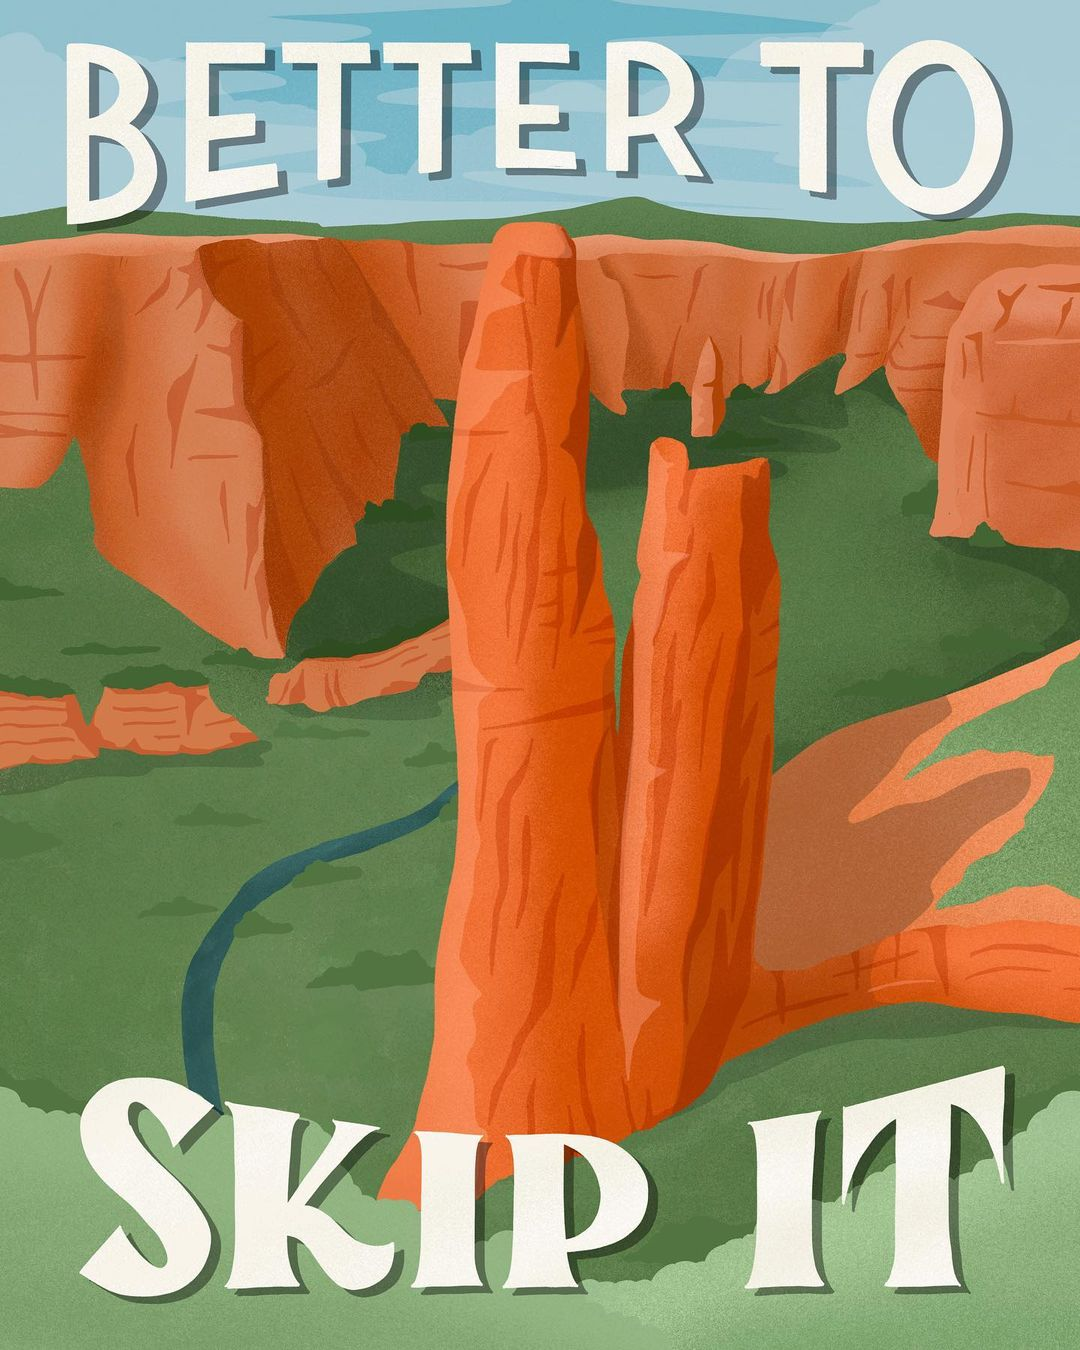 Funny National Park Review Posters by Amber Share